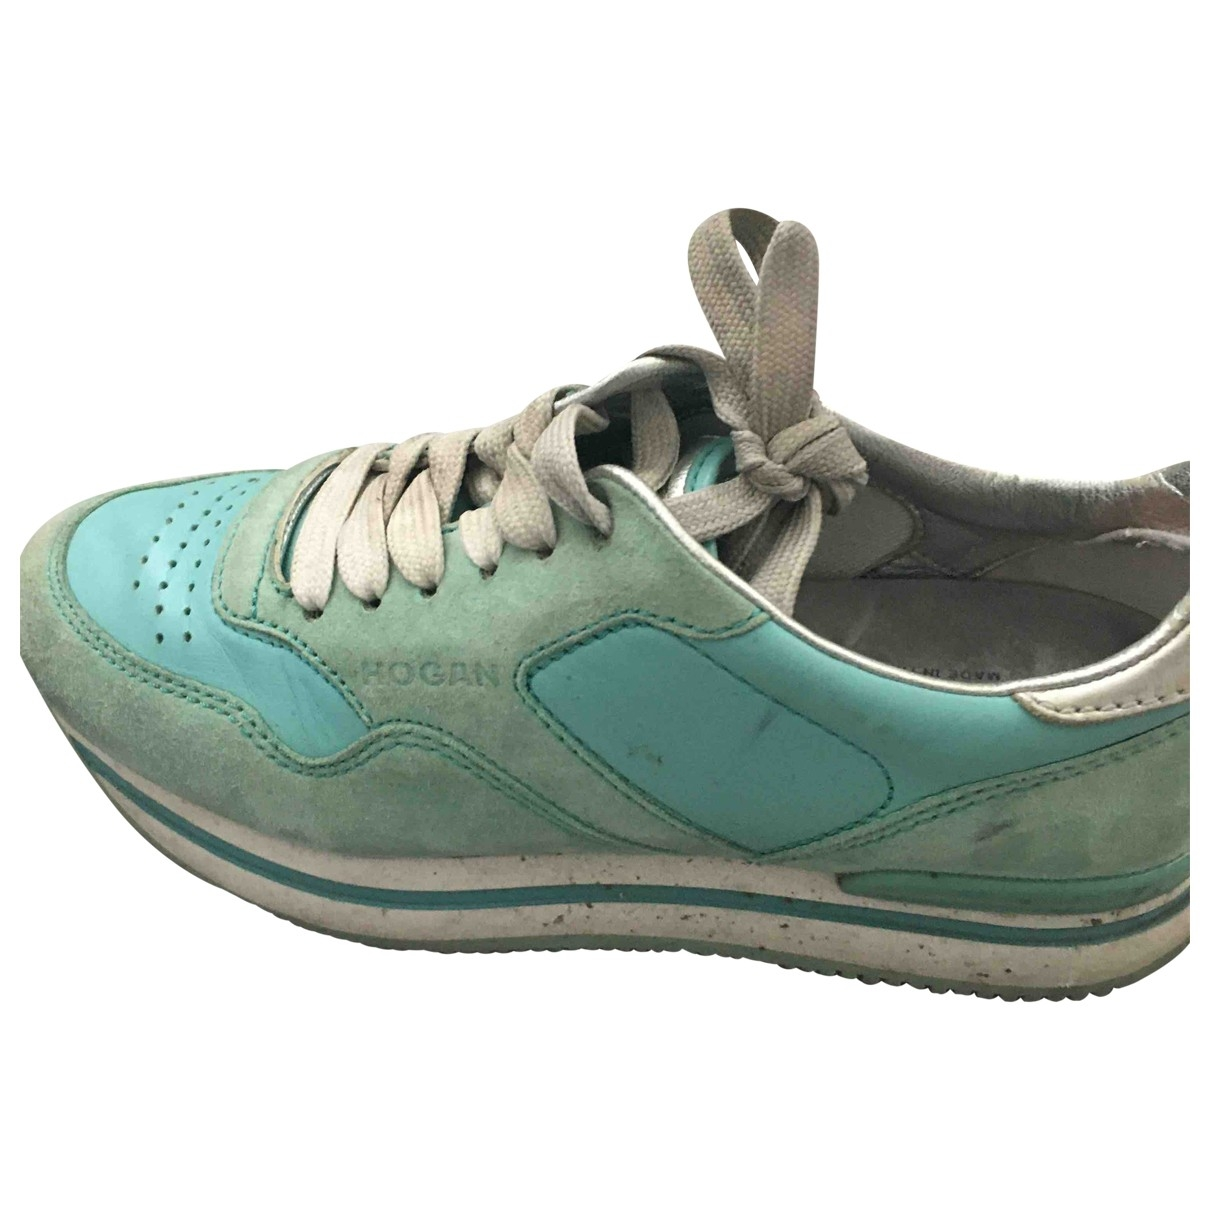 Hogan \N Turquoise Suede Trainers for Women 36 EU